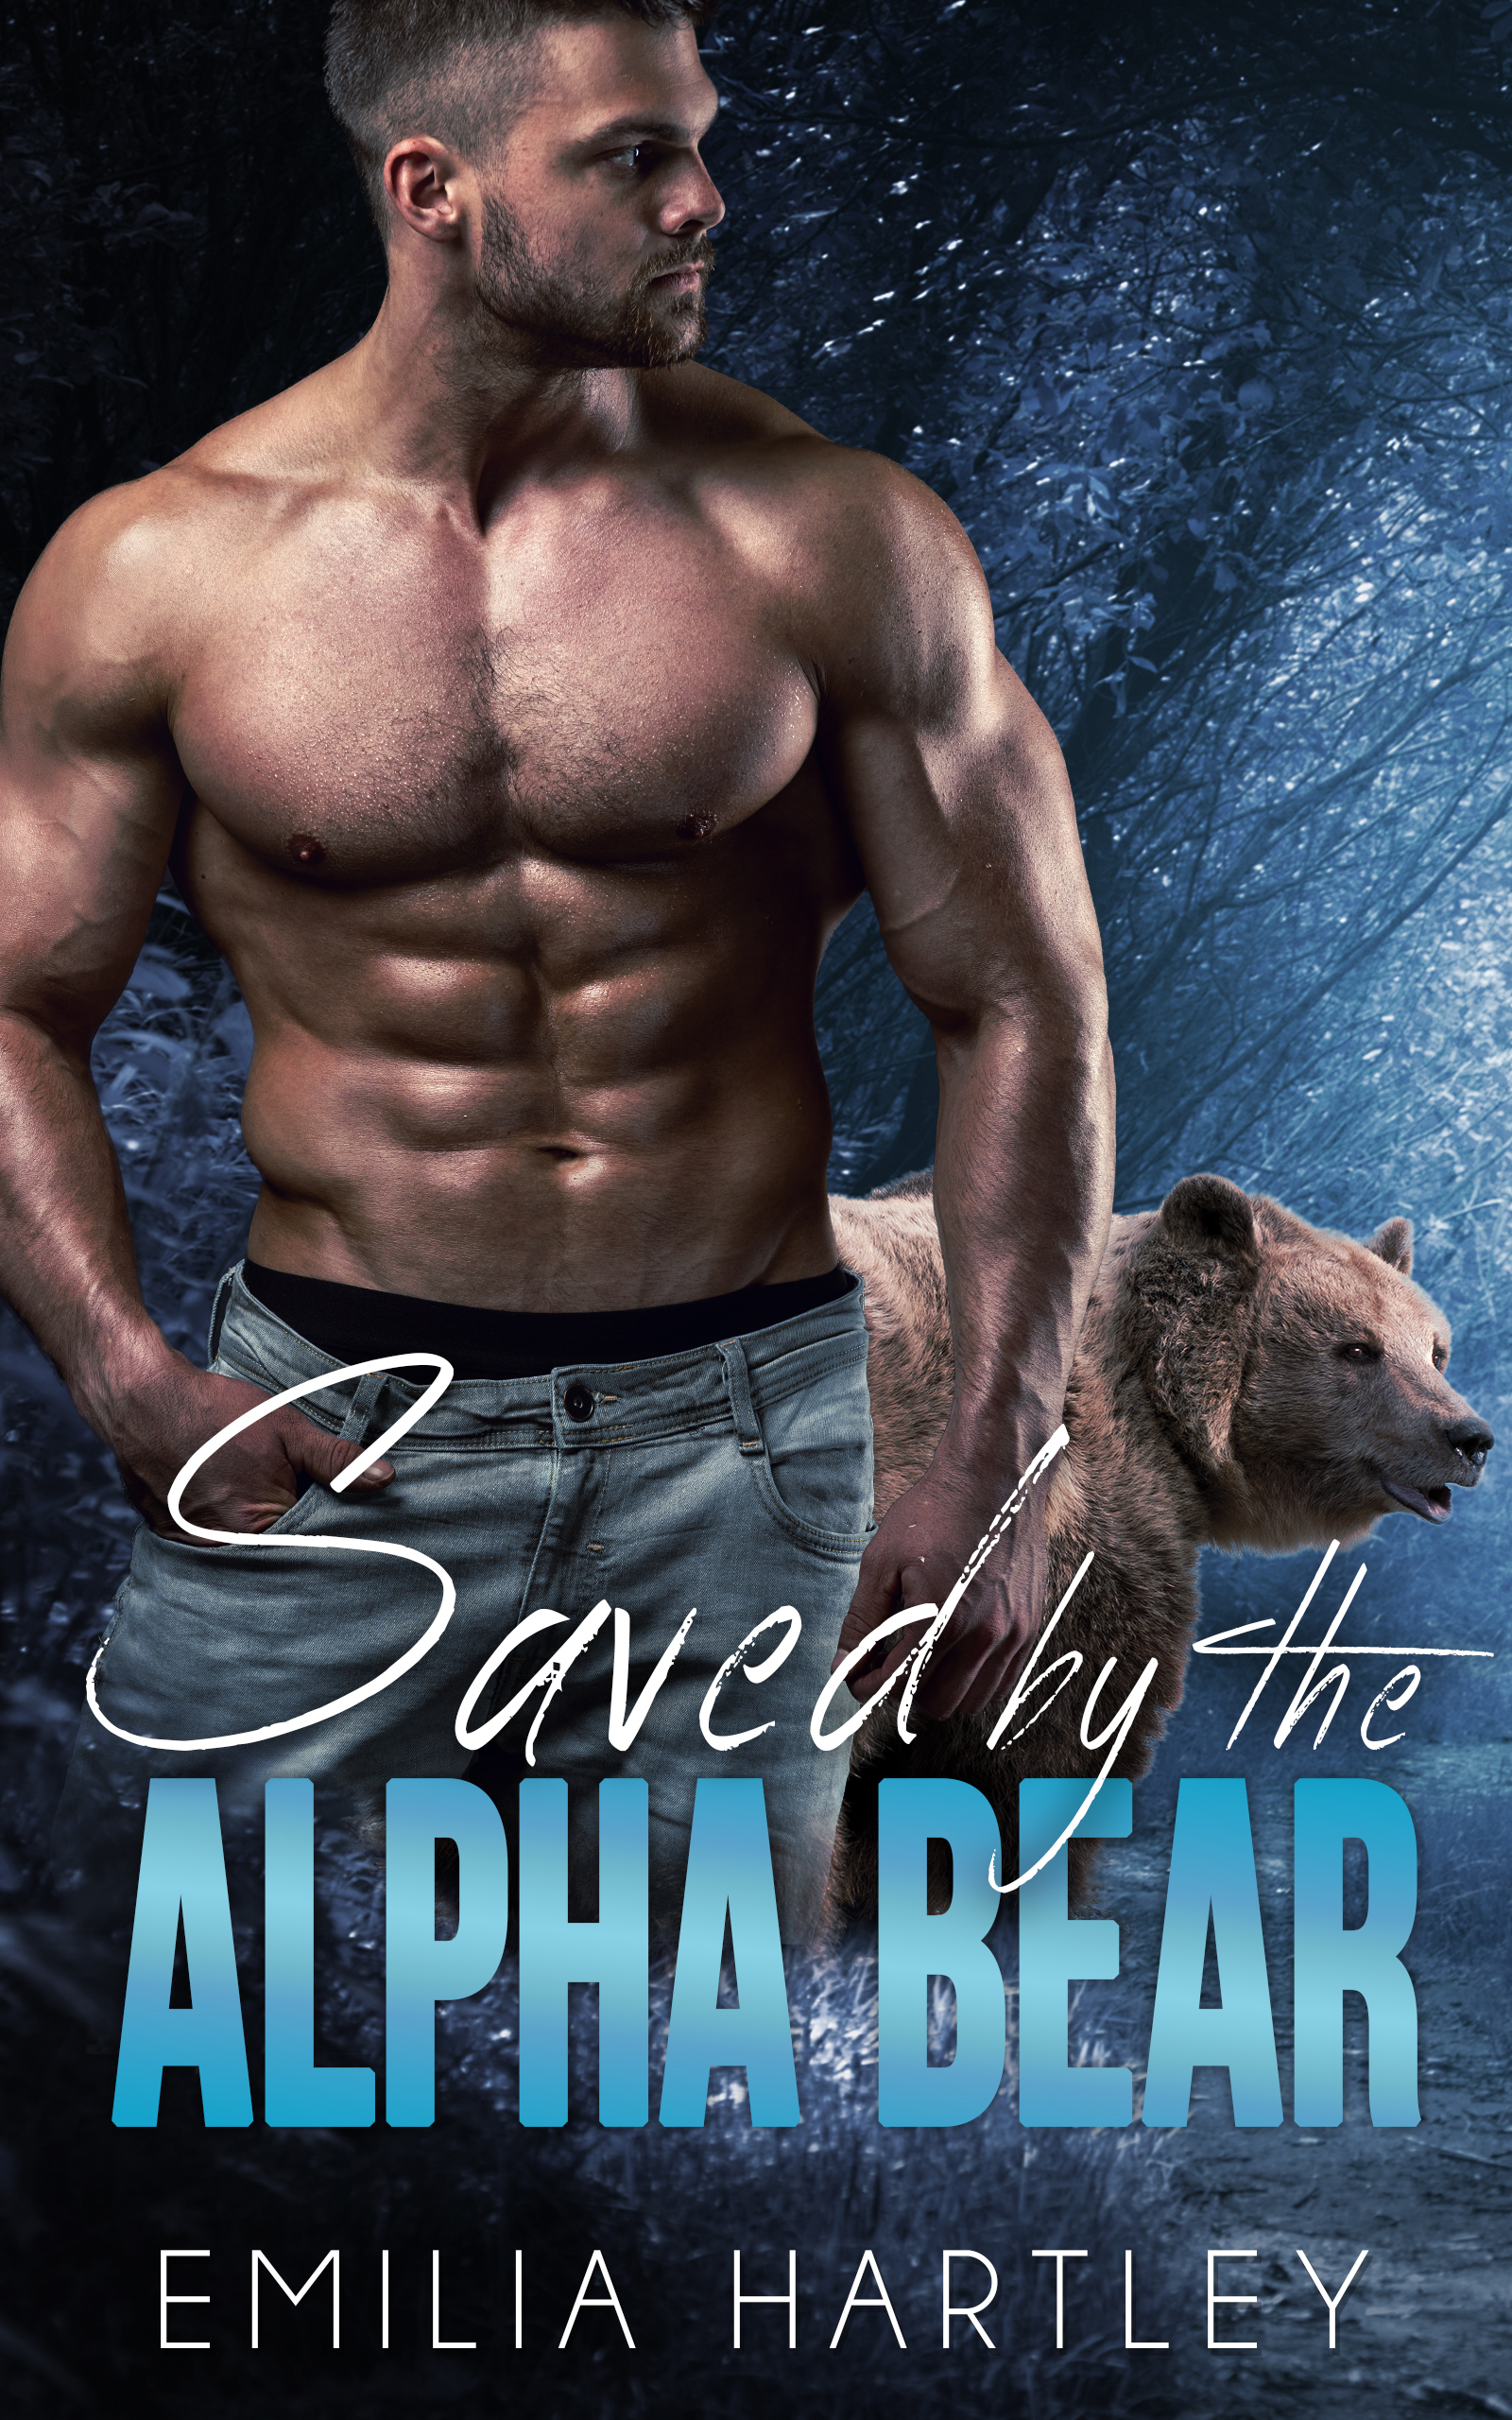 Saved by the Alpha Bear Image